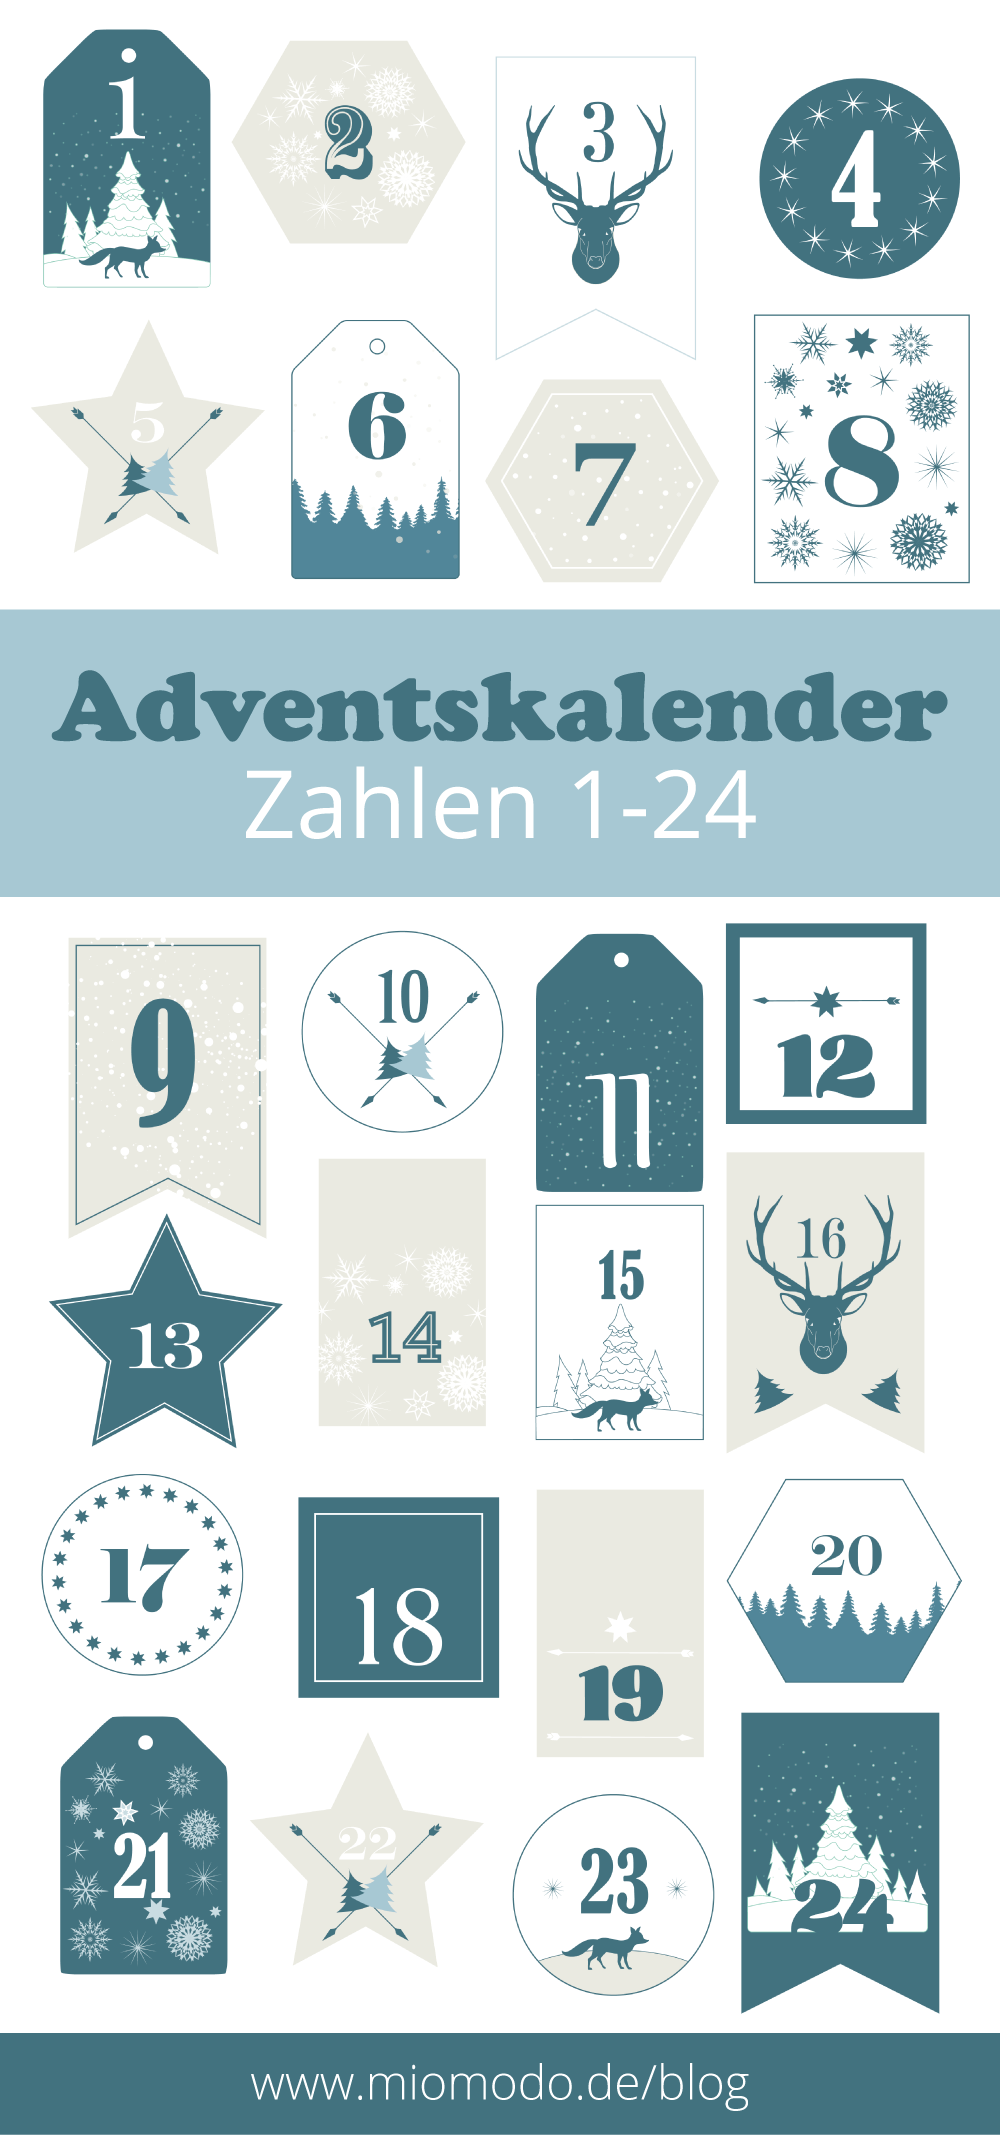 Adventskalender Zahlen 1-24 drucken #adventskalendermann